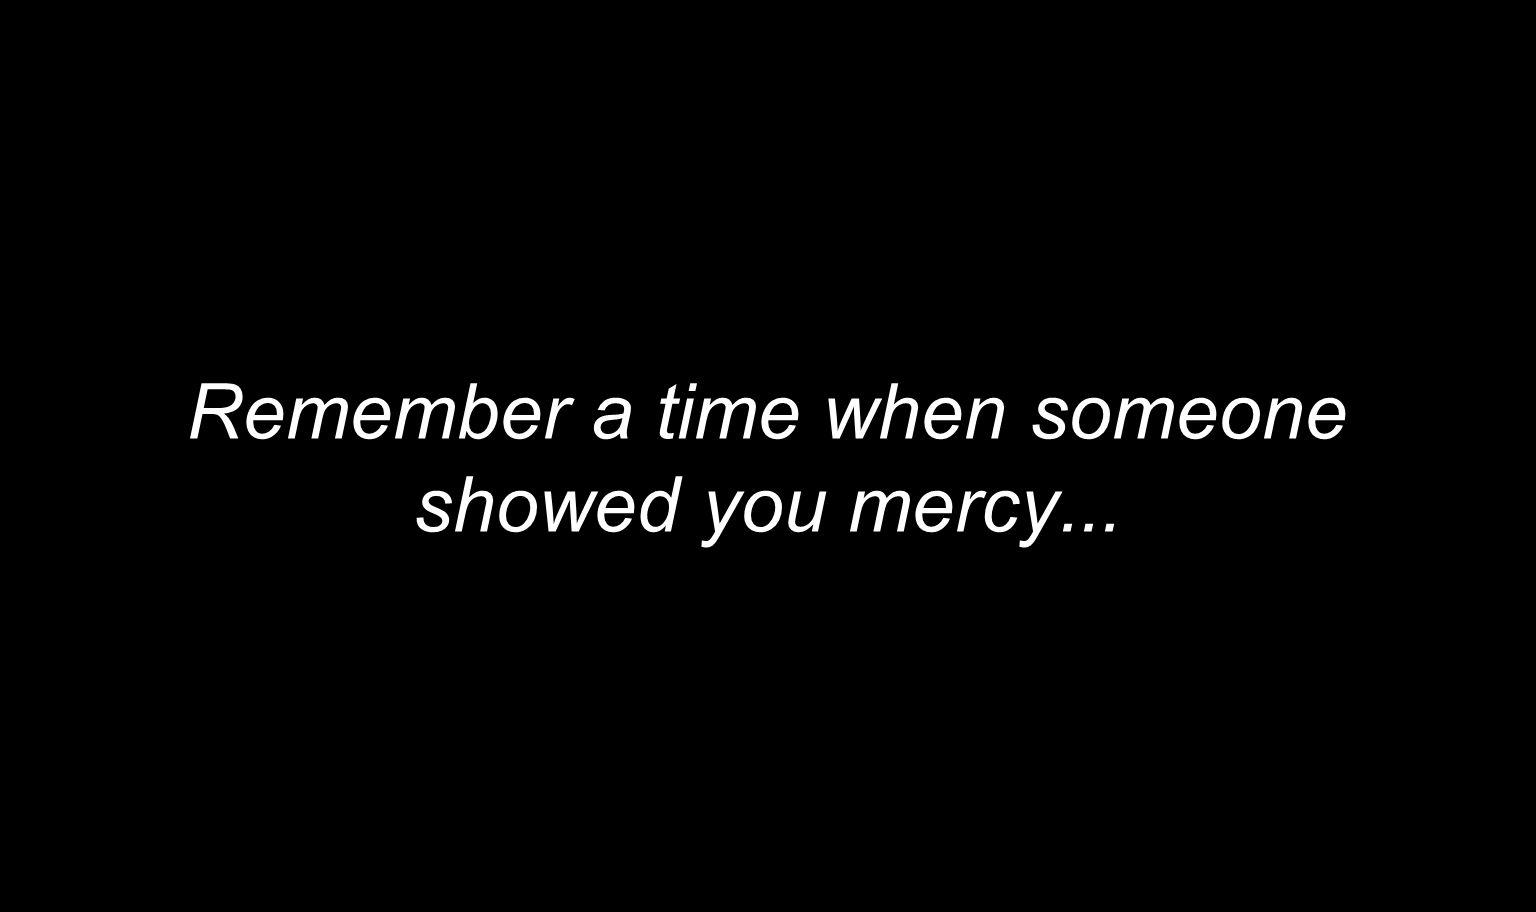 Remember a time when someone showed you mercy...